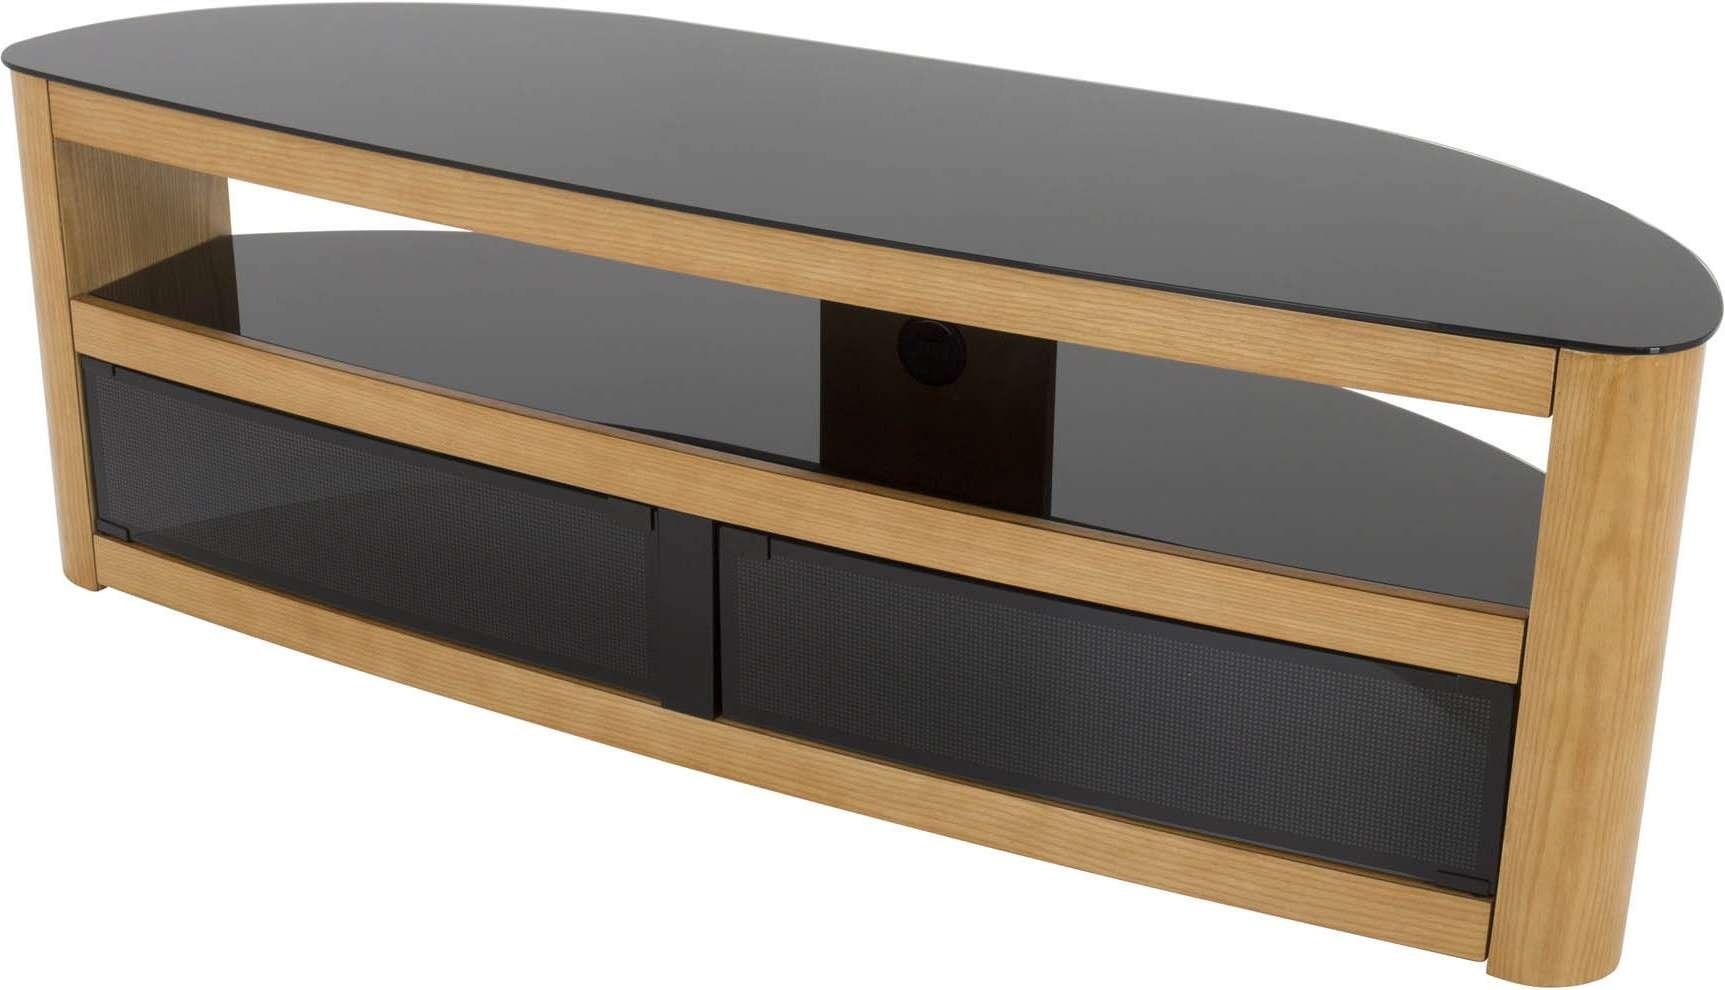 Avf Fs1500Buro Tv Stands With Regard To Avf Tv Stands (View 4 of 15)